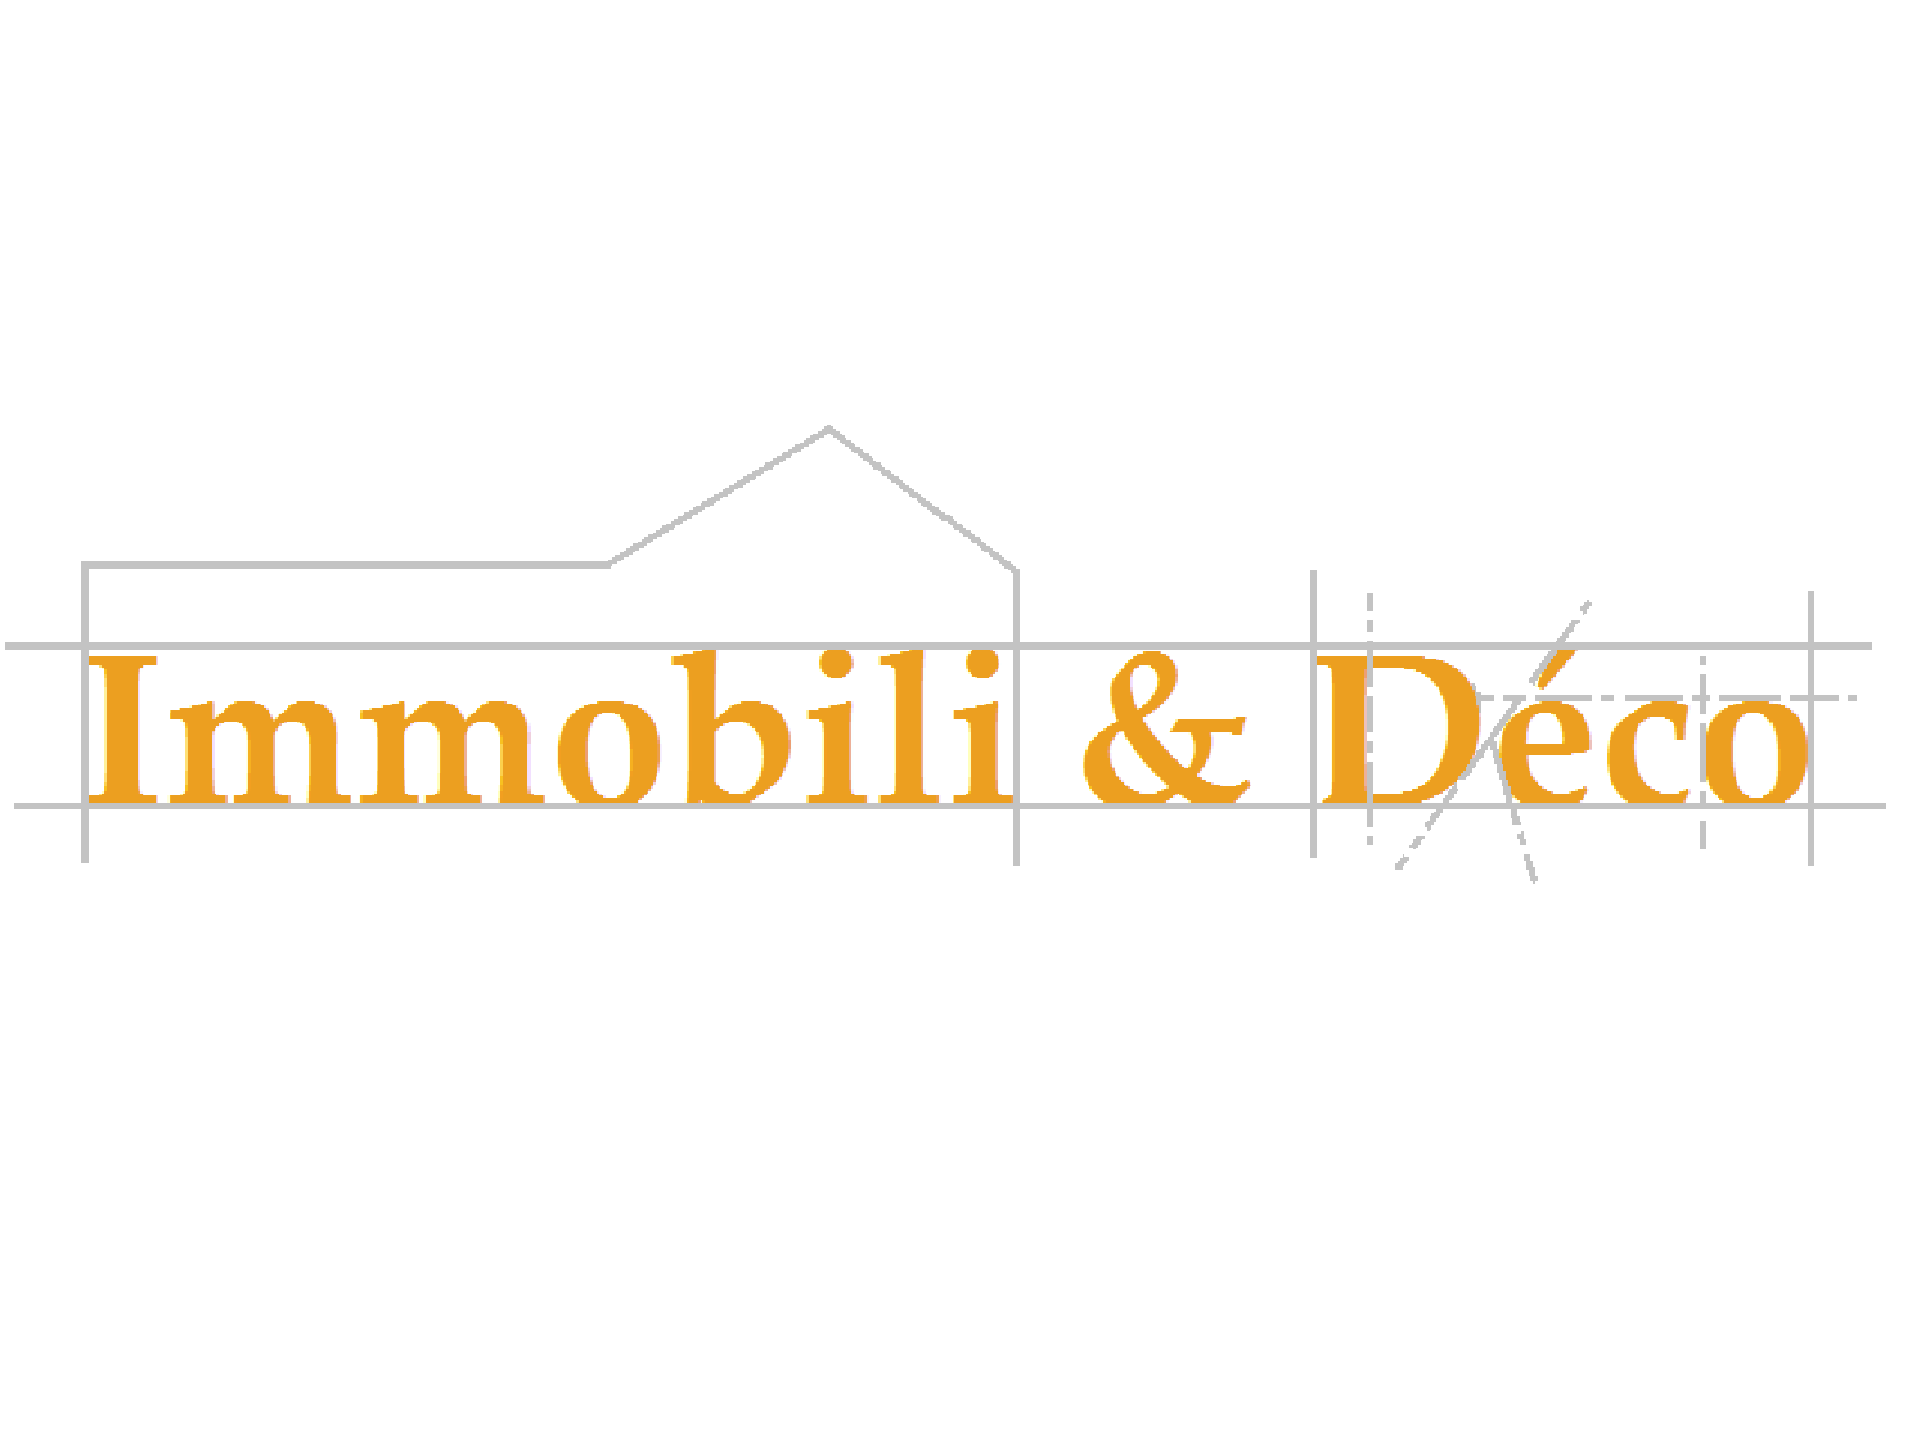 ImmobilierDeco-Decoration-Homestagging-Conseil-Prestation-immobilier-décoration logo style